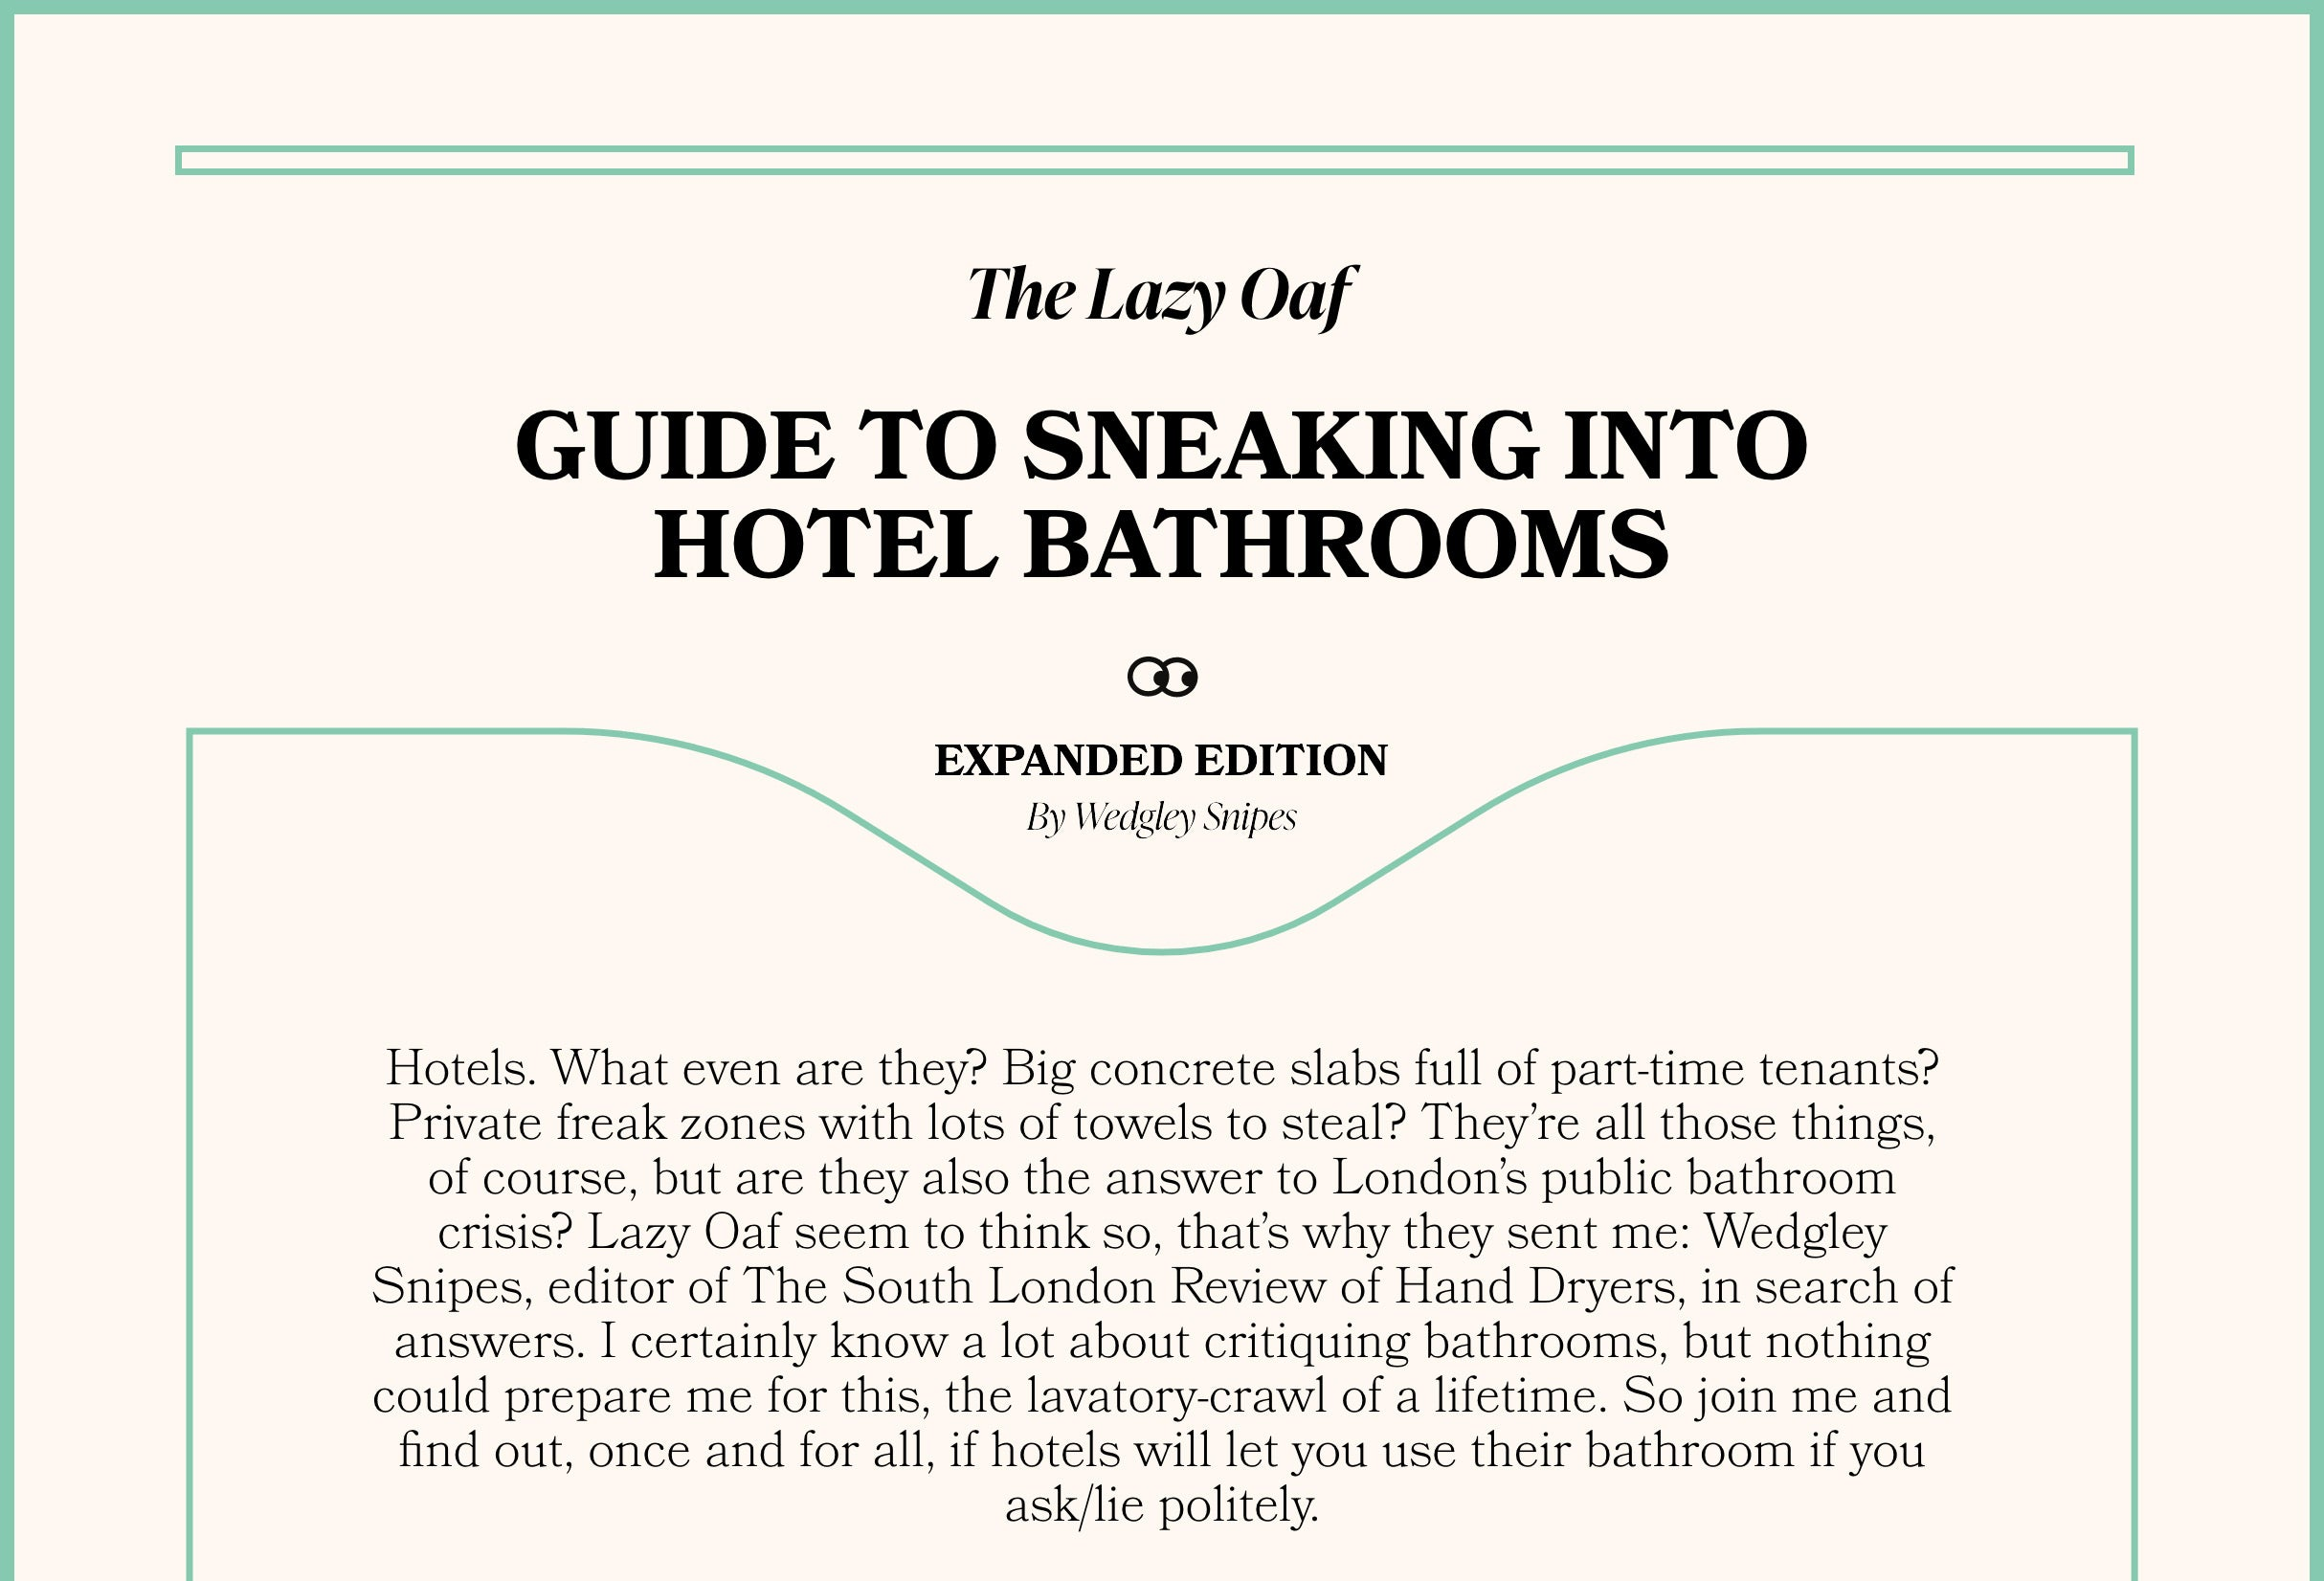 The Lazy Oaf Guide to Sneaking into Hotel Bathrooms